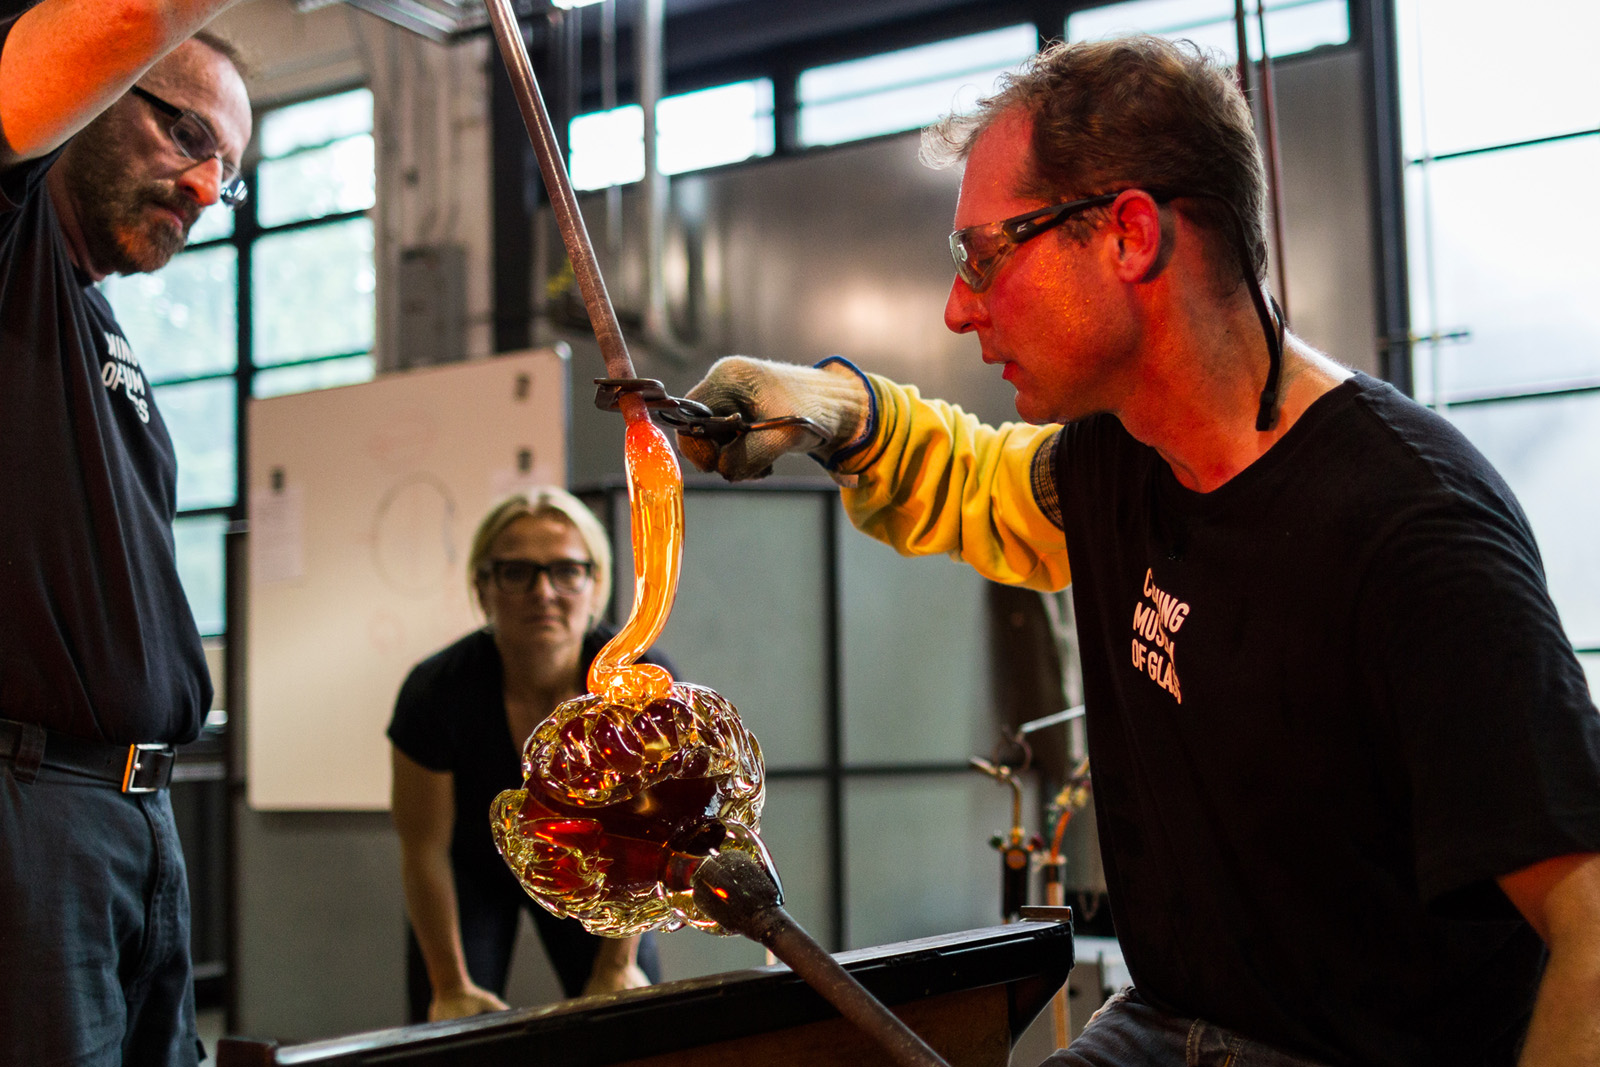 Glassmaker Eric Meek adds detail to the glass brain designed by Sigga Heimis